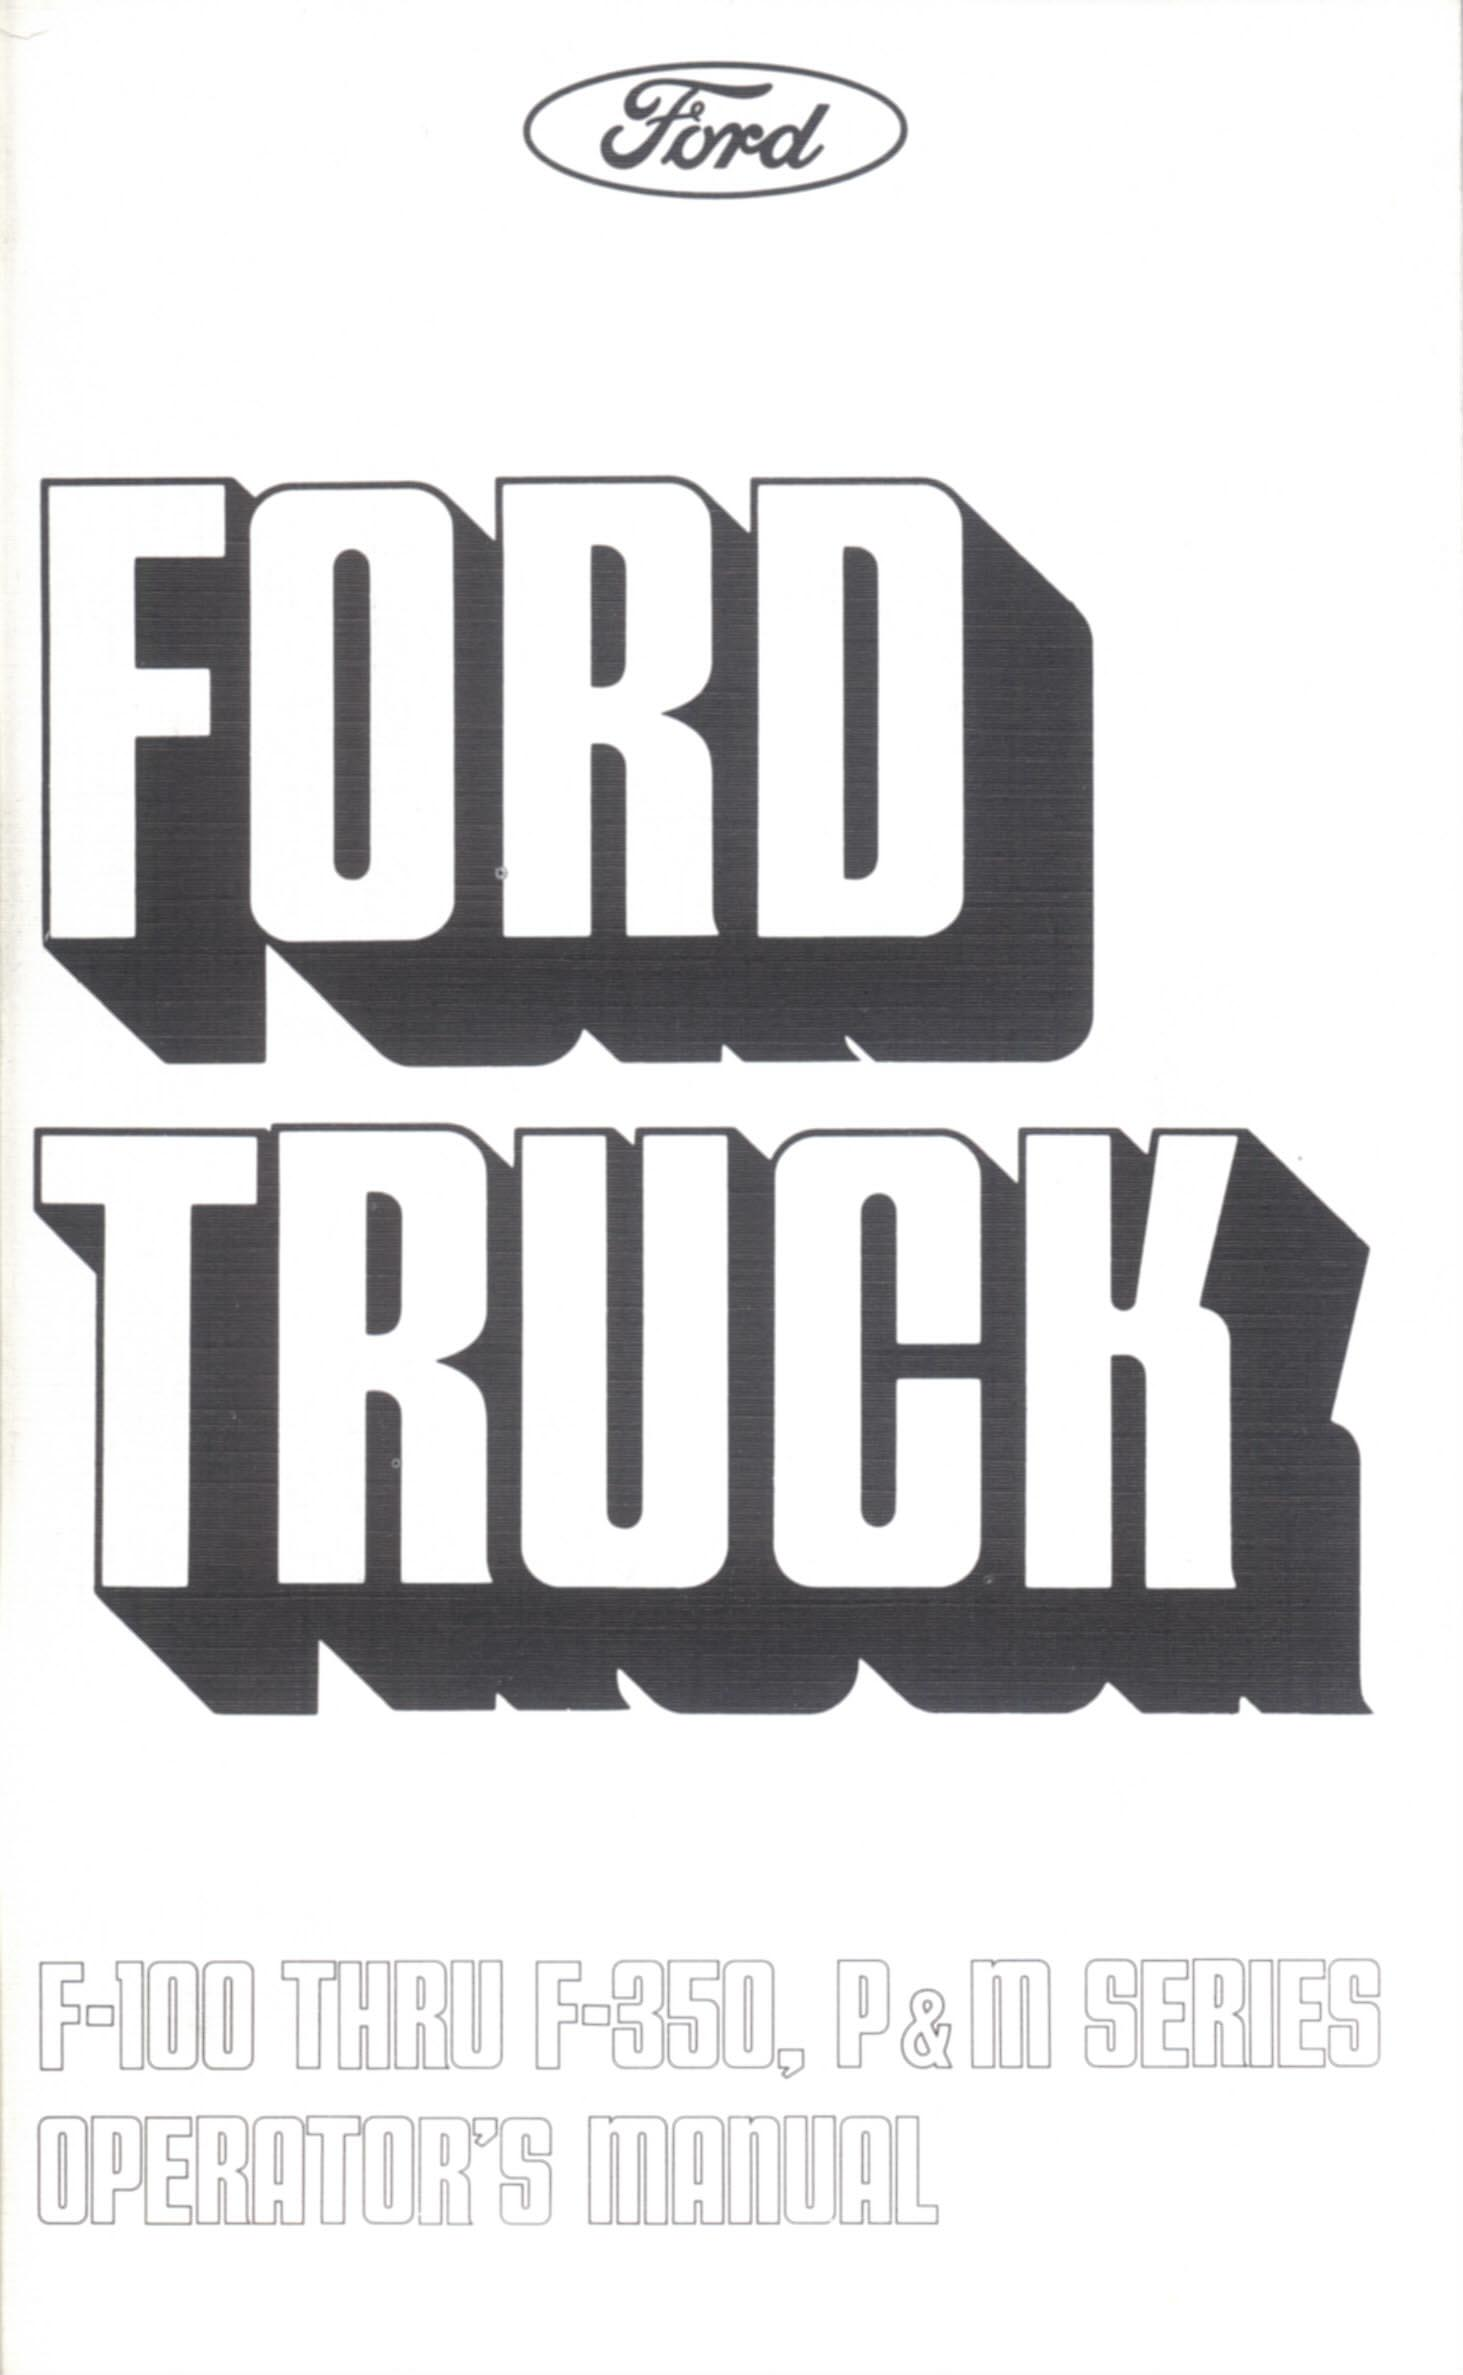 1975 Ford Truck Owners Manual-Broncograveyard.com